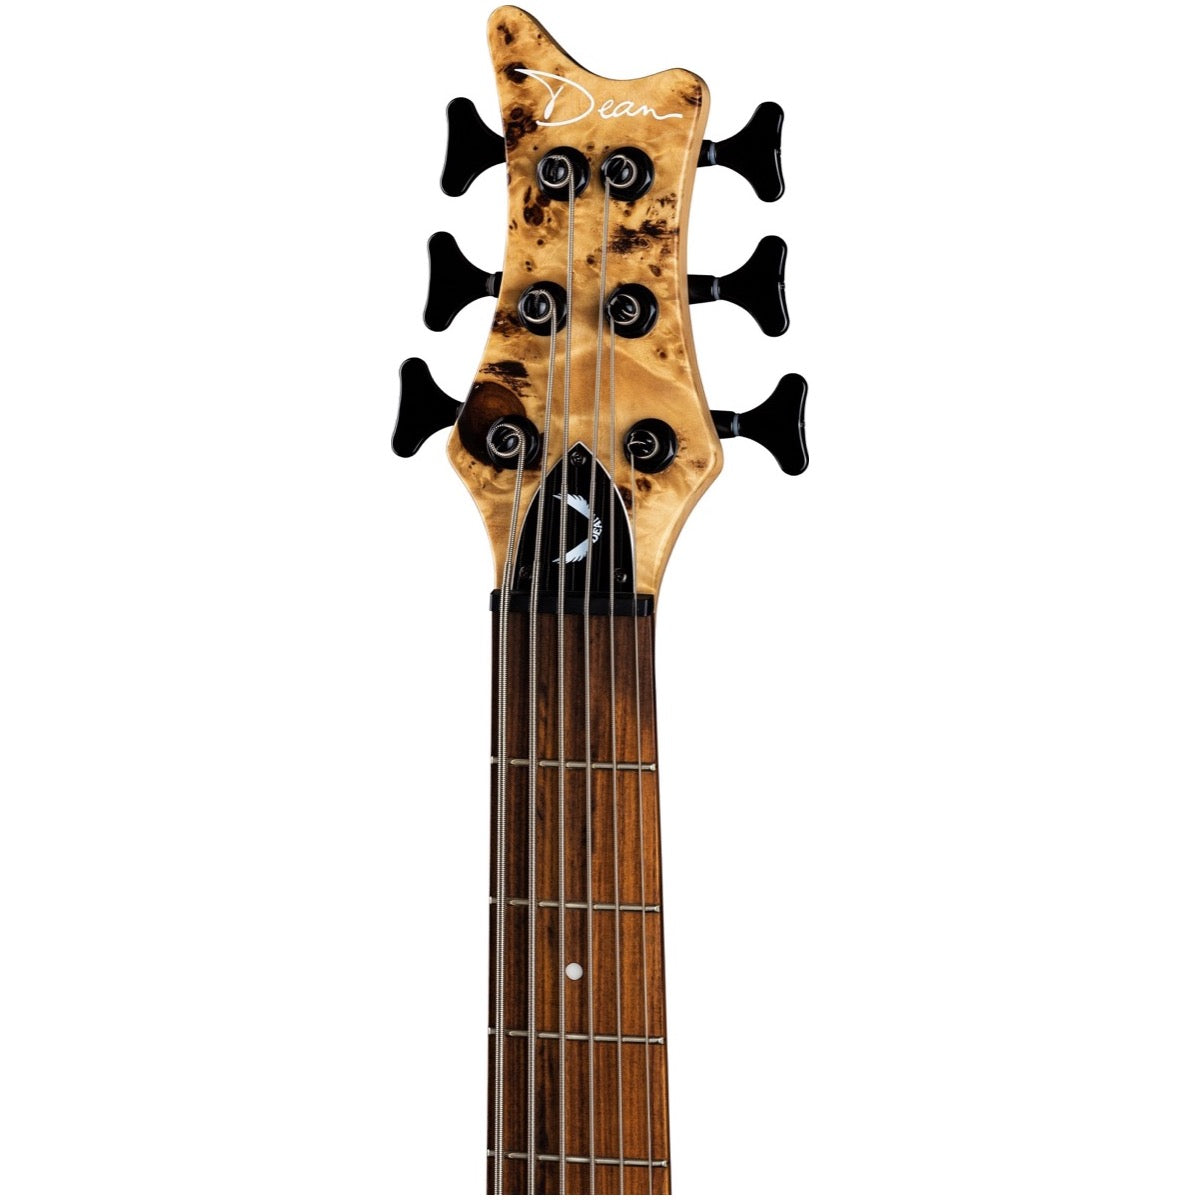 Dean Edge Select 6 Bass, 6-String, Burled Poplar